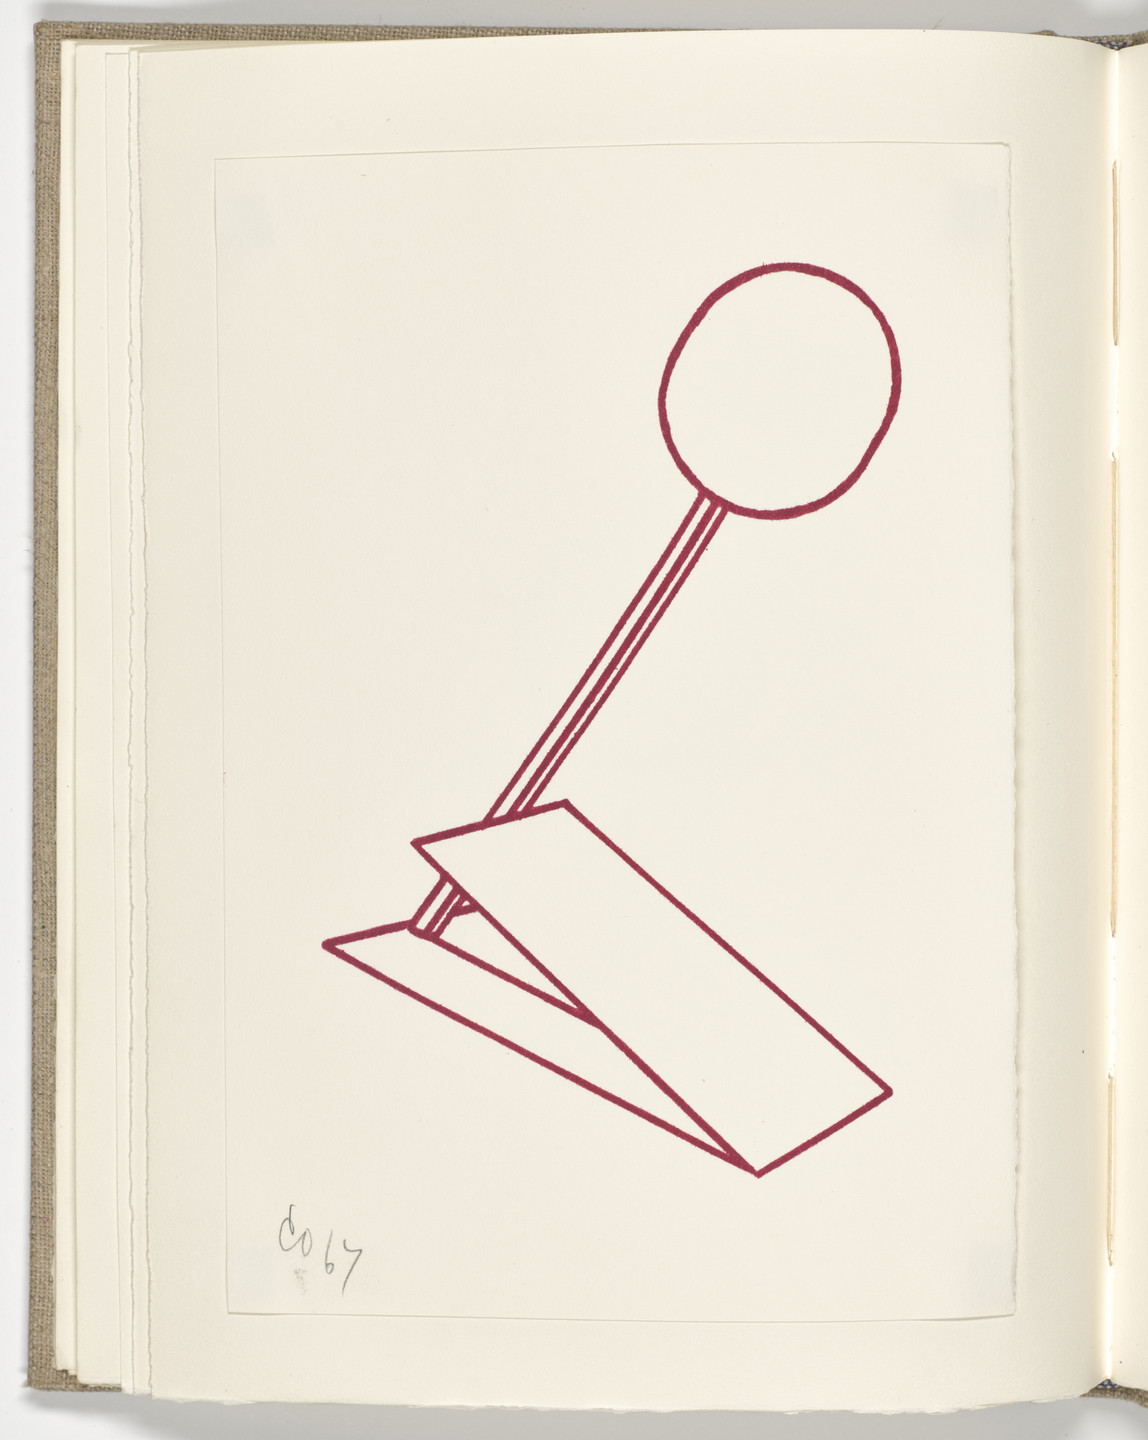 Claes Oldenburg. Plate (folio 10 verso) from Stamped Indelibly. 1967